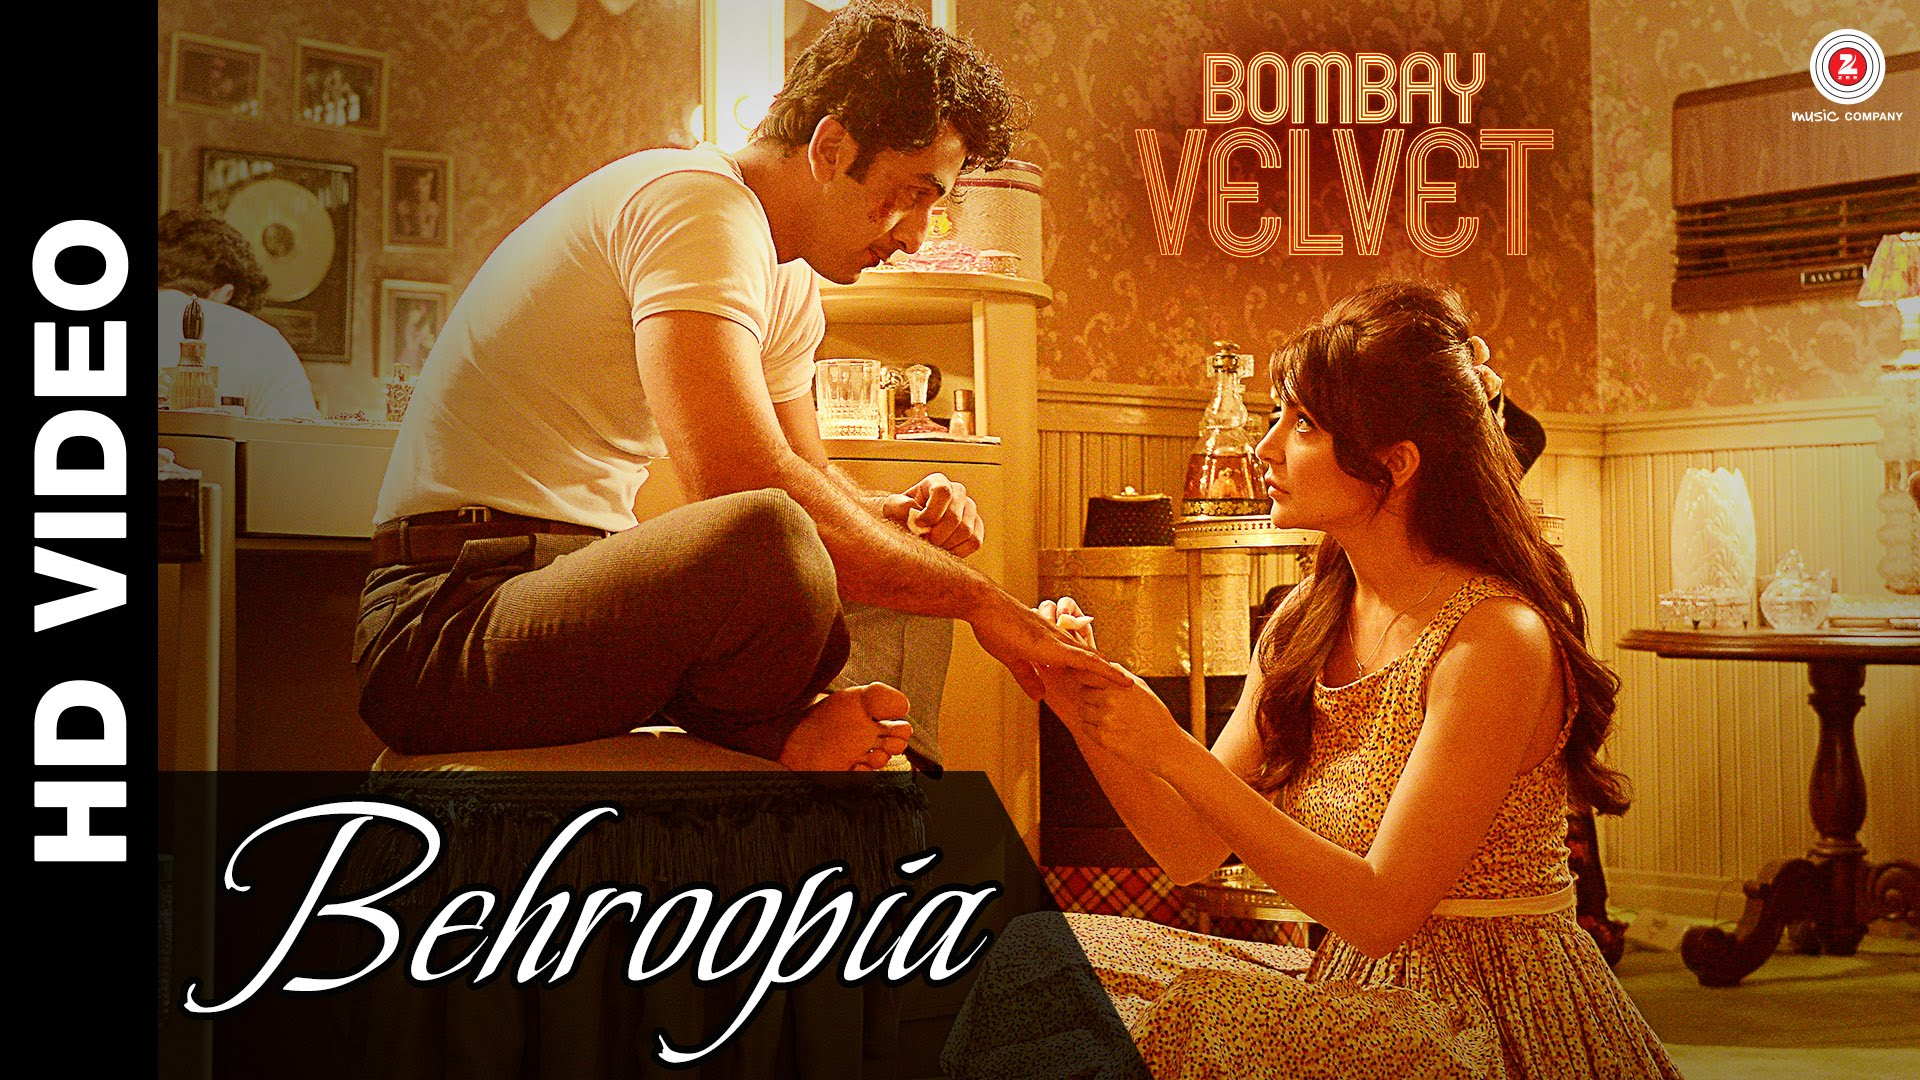 Watch: 'Behroopia' song from 'Bombay Velvet'